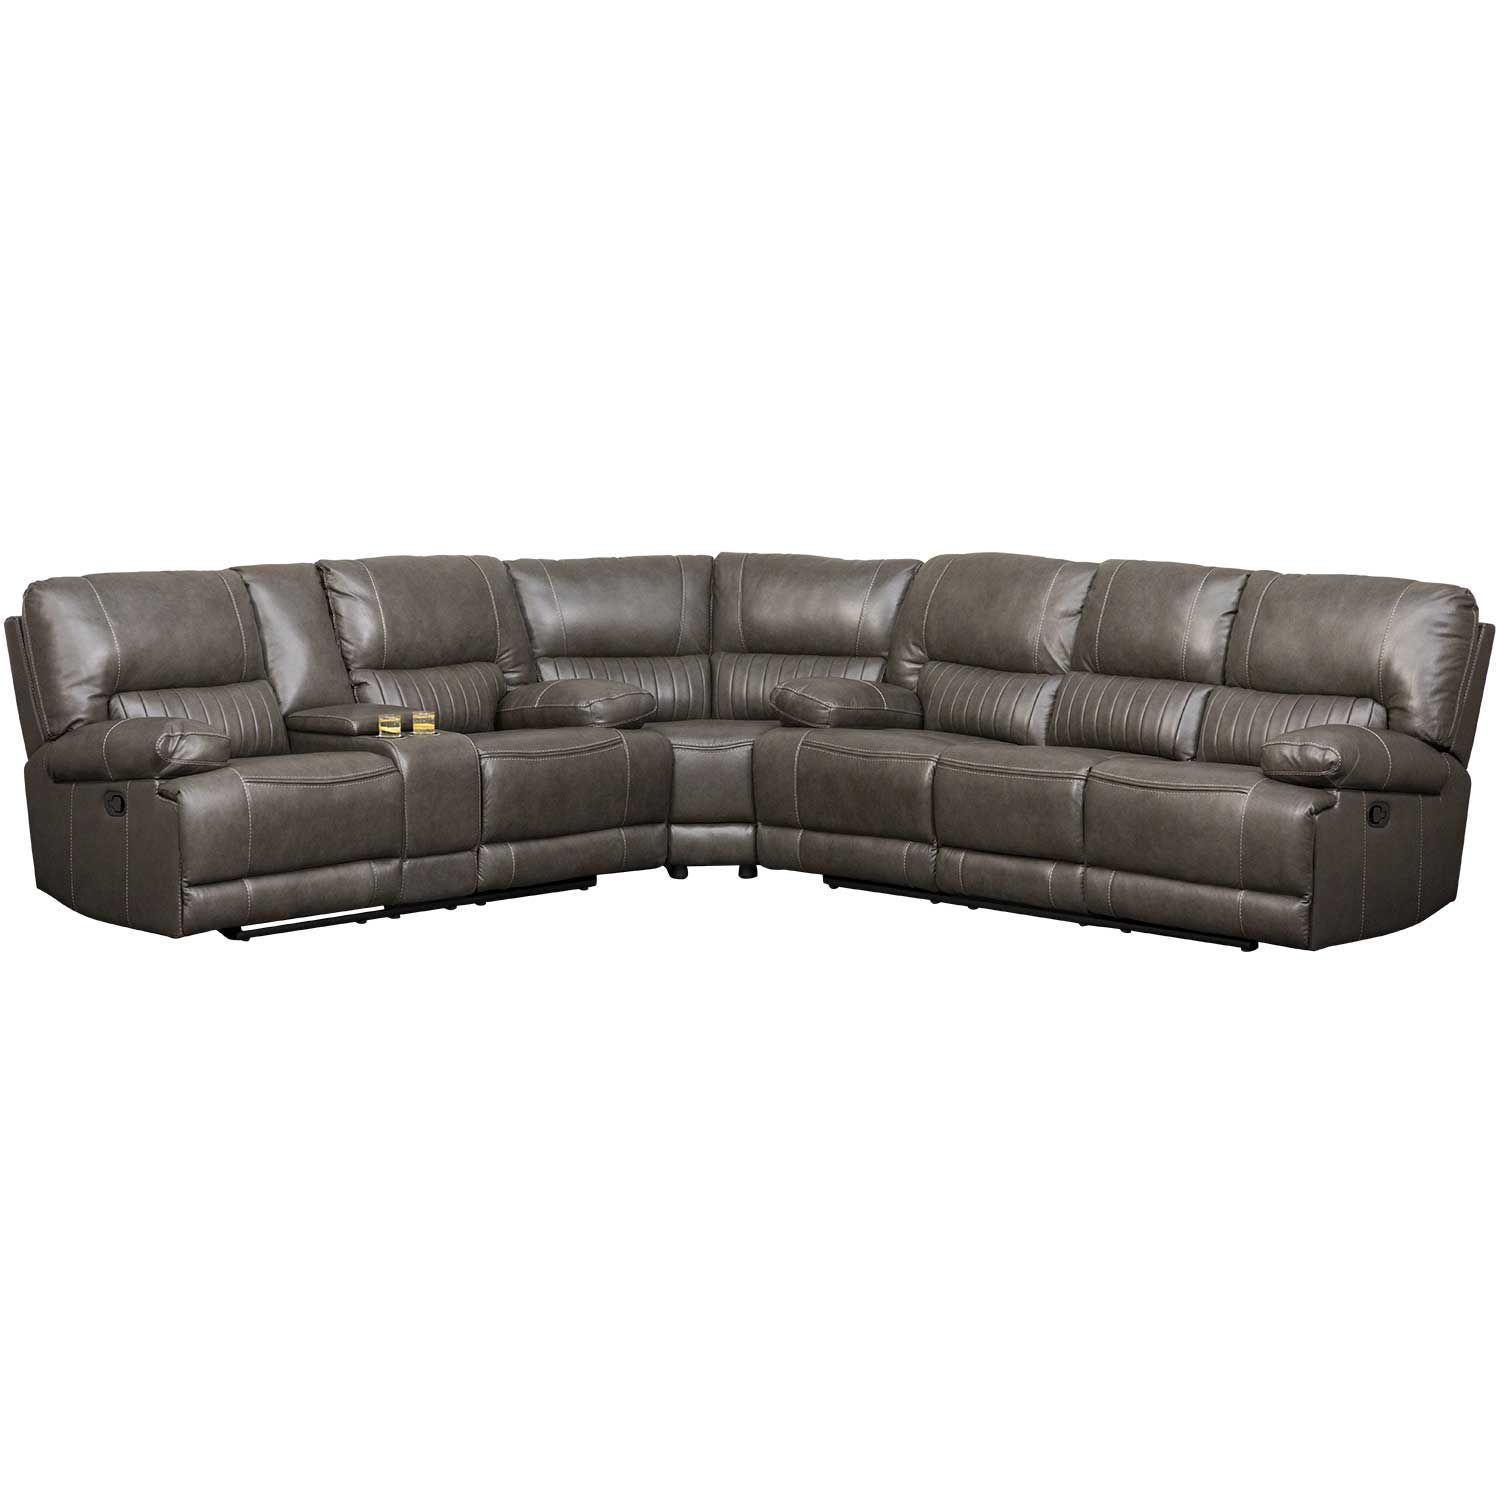 Picture of 3PC Gray Leather Power Reclining Sectional